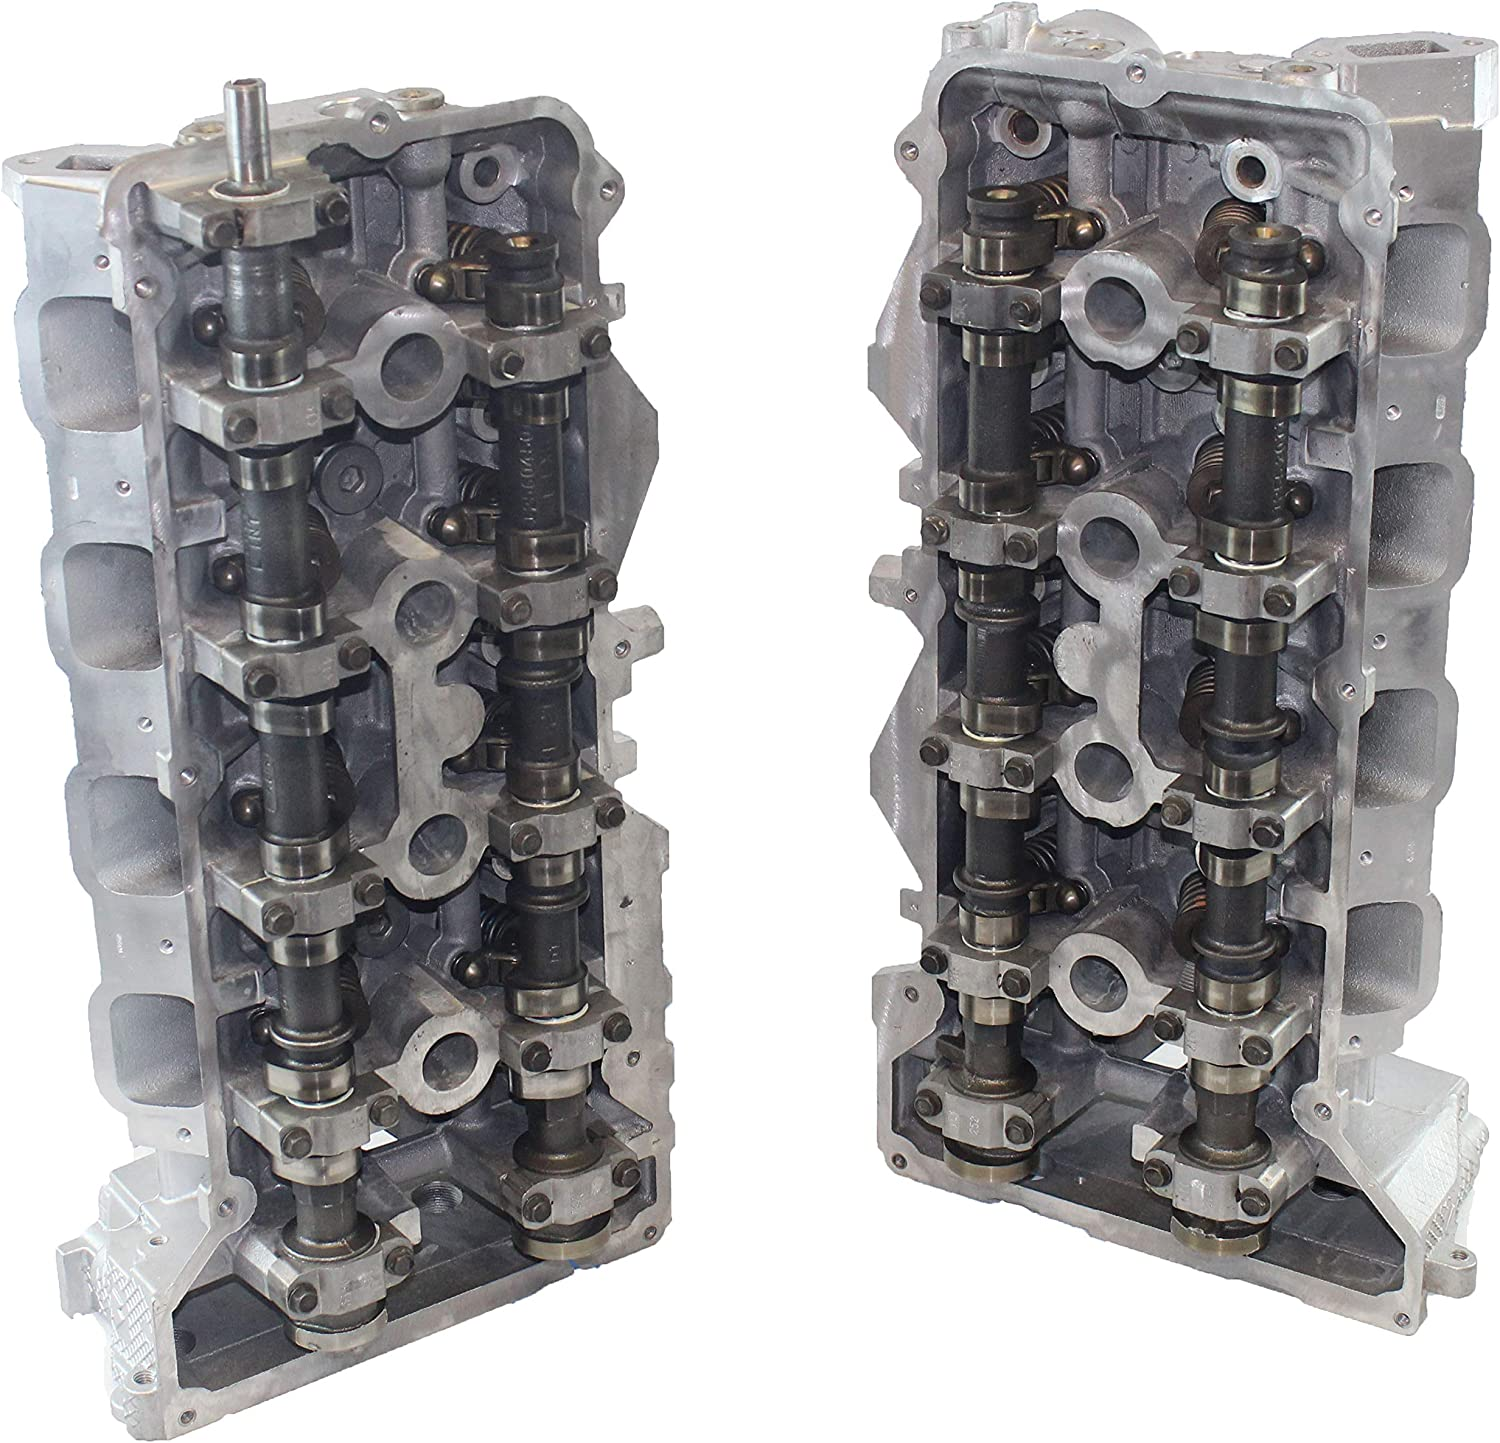 Remanufactured Cylinder Heads for Northstar DOHC 4.6 Kansas City Mall V8 Max 88% OFF PAIR 199